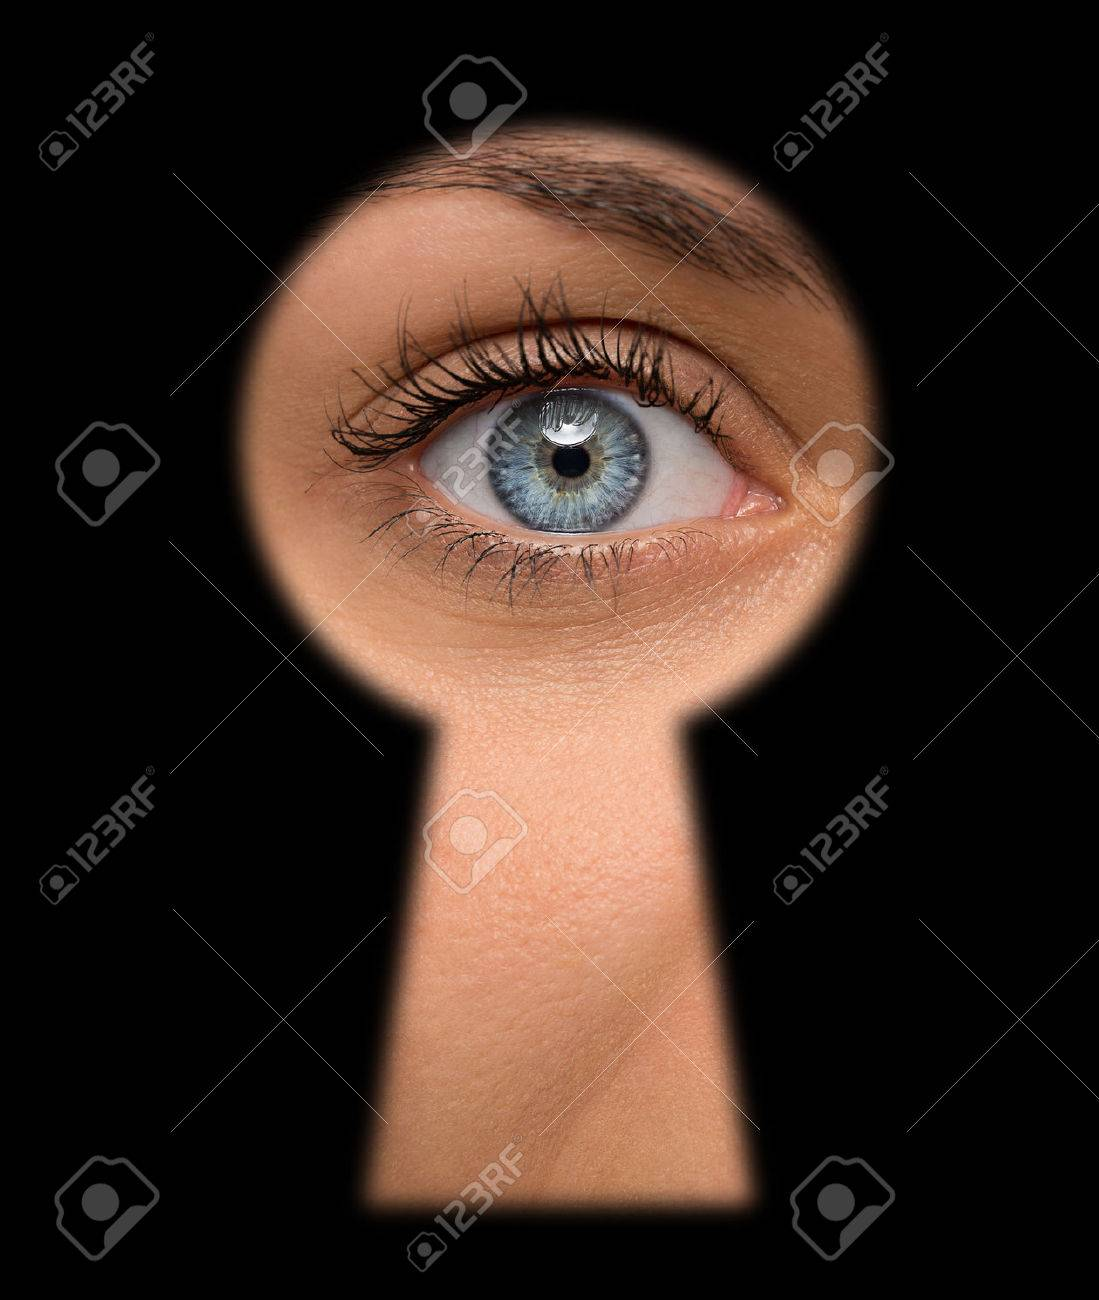 Close up of shocked female eye looking through a keyhole - 43608544